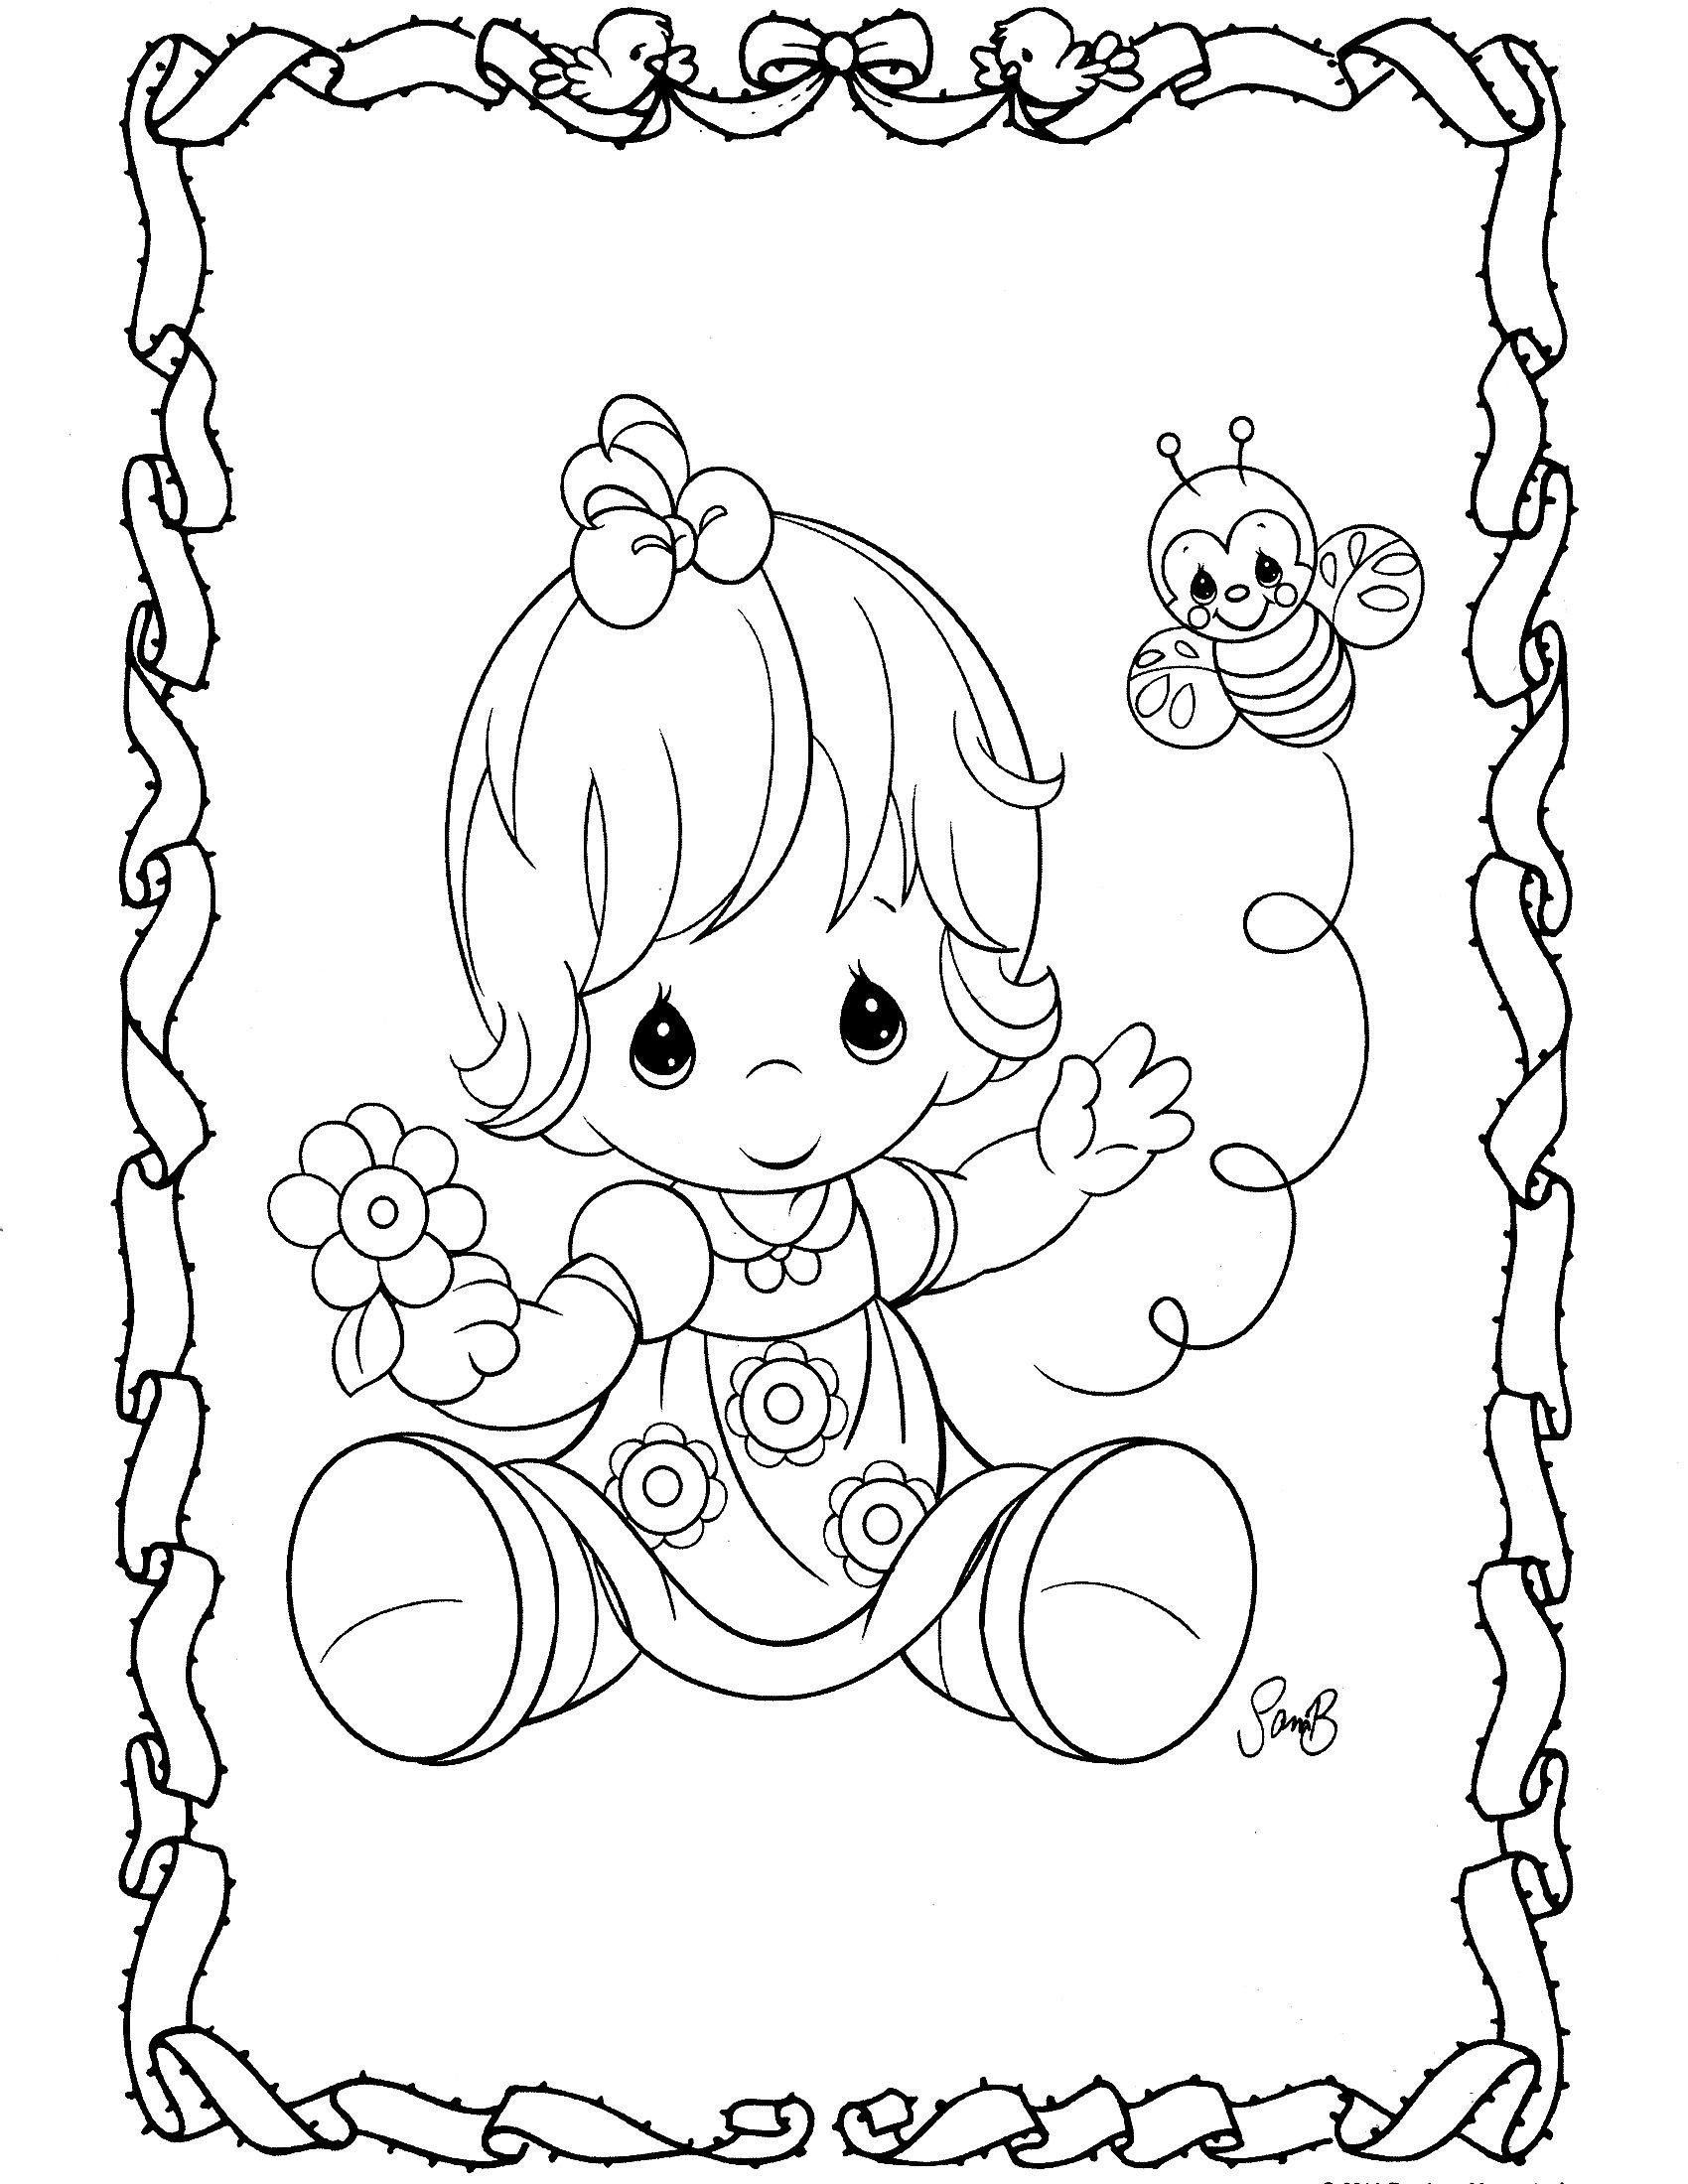 Precious Moments Coloring Pages Awesome Precious Moments Coloring